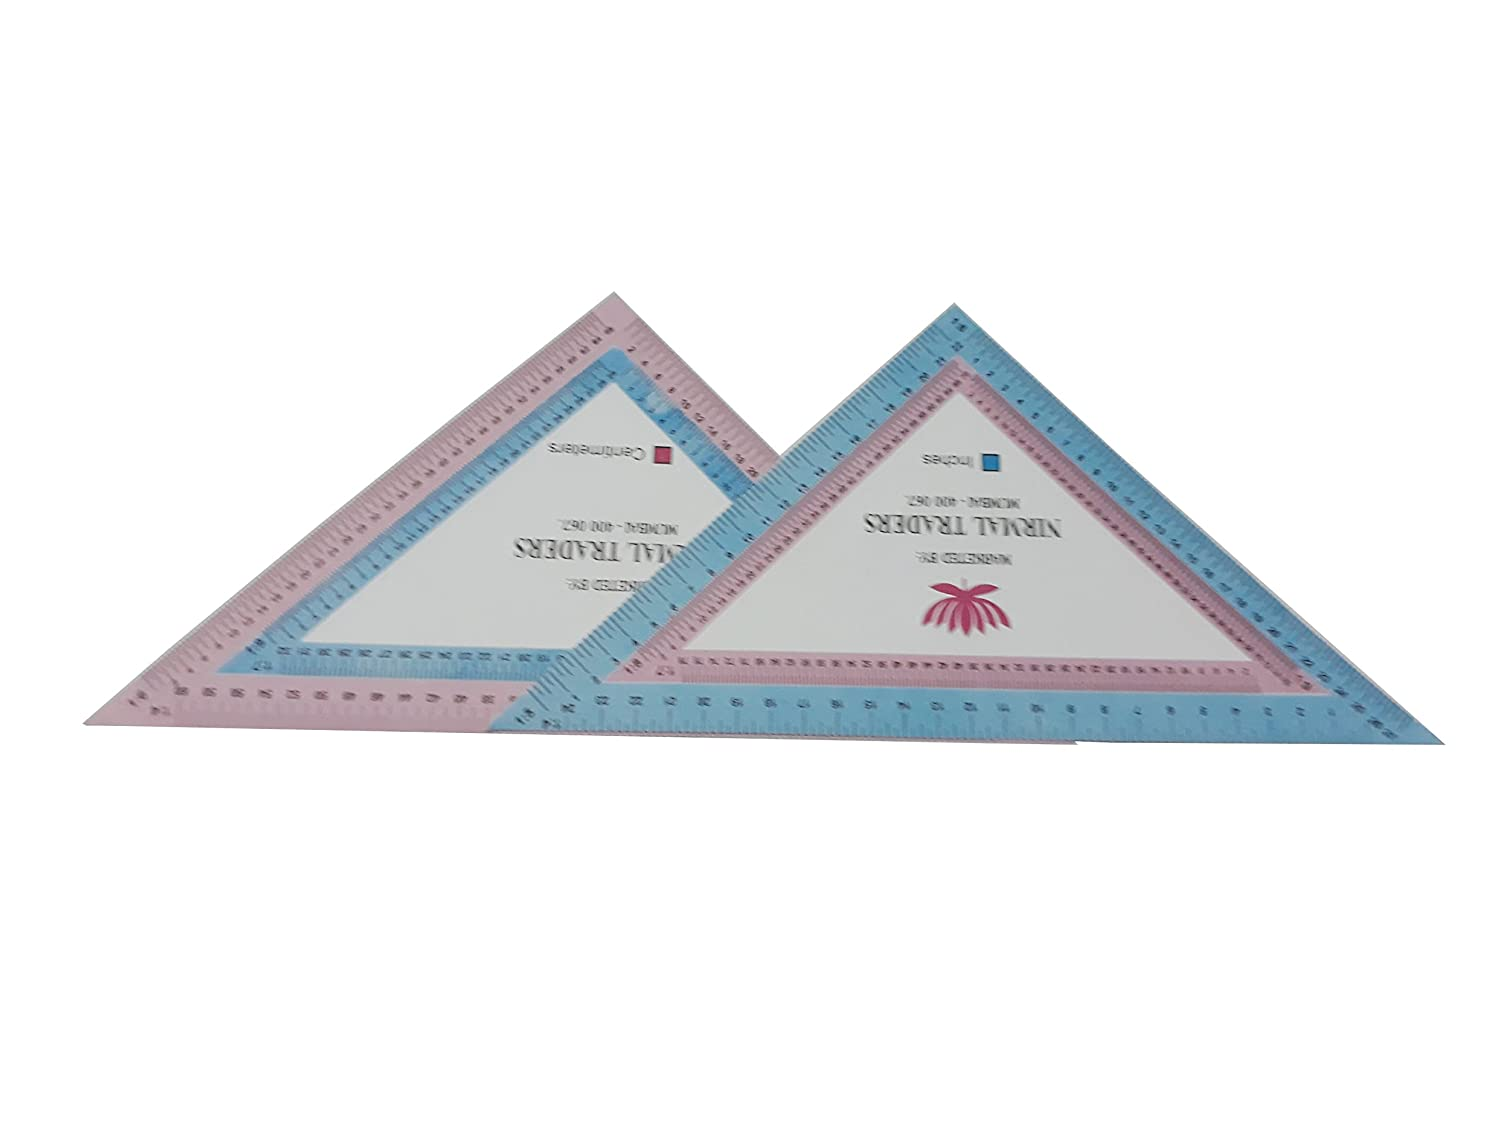 Premium Quality Paper Scales Paper Set Squares For Sewing Tailoring Fashion Designing Boutique Best For Drawing And Drafting Patterns Designing Garments Dresses Costumes Etc Both In Inches And Centimeters Amazon In Office Products